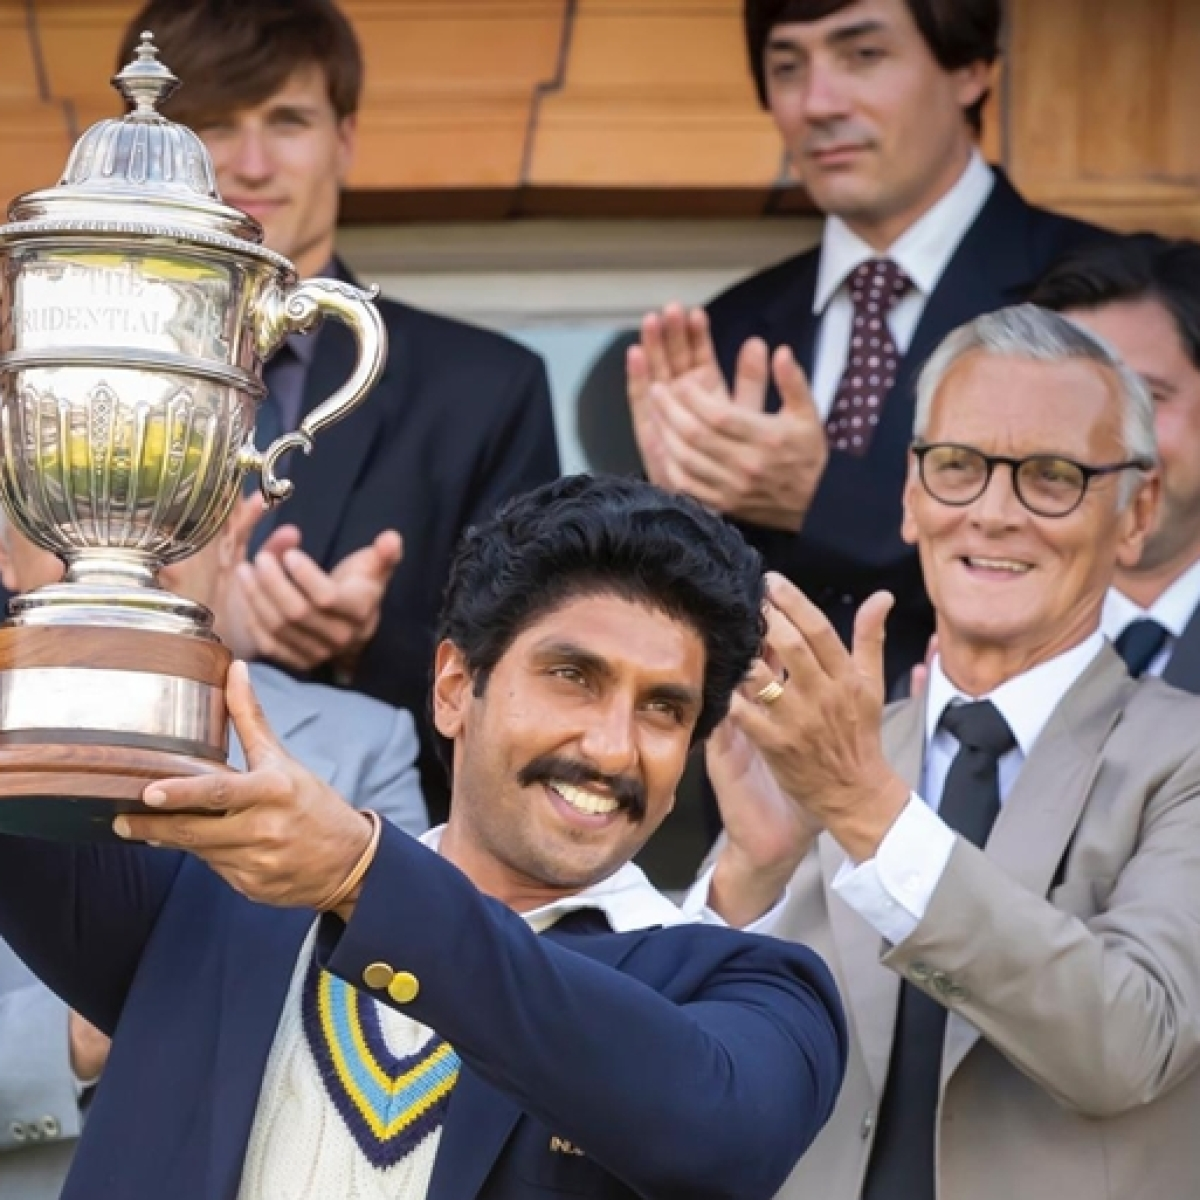 Ranveer Singh recreates Kapil Dev's iconic '83 world cup lifting moment